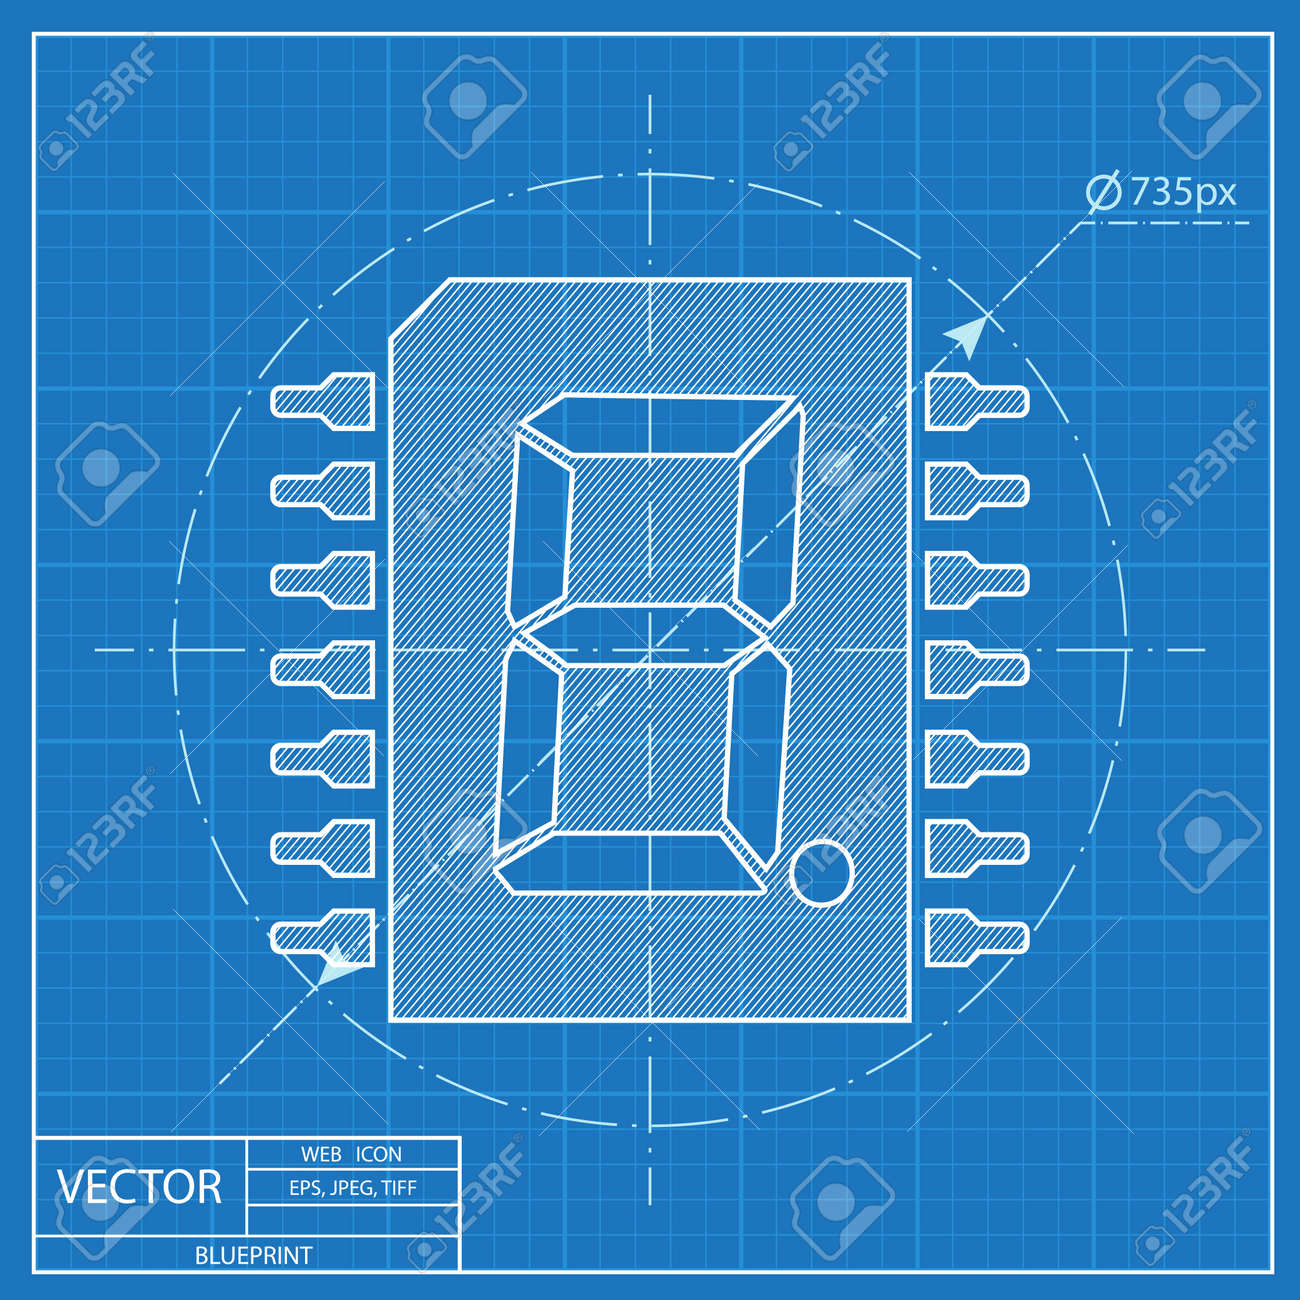 Blueprint icon of digital microchip royalty free cliparts vectors blueprint icon of digital microchip stock vector 55724418 malvernweather Images